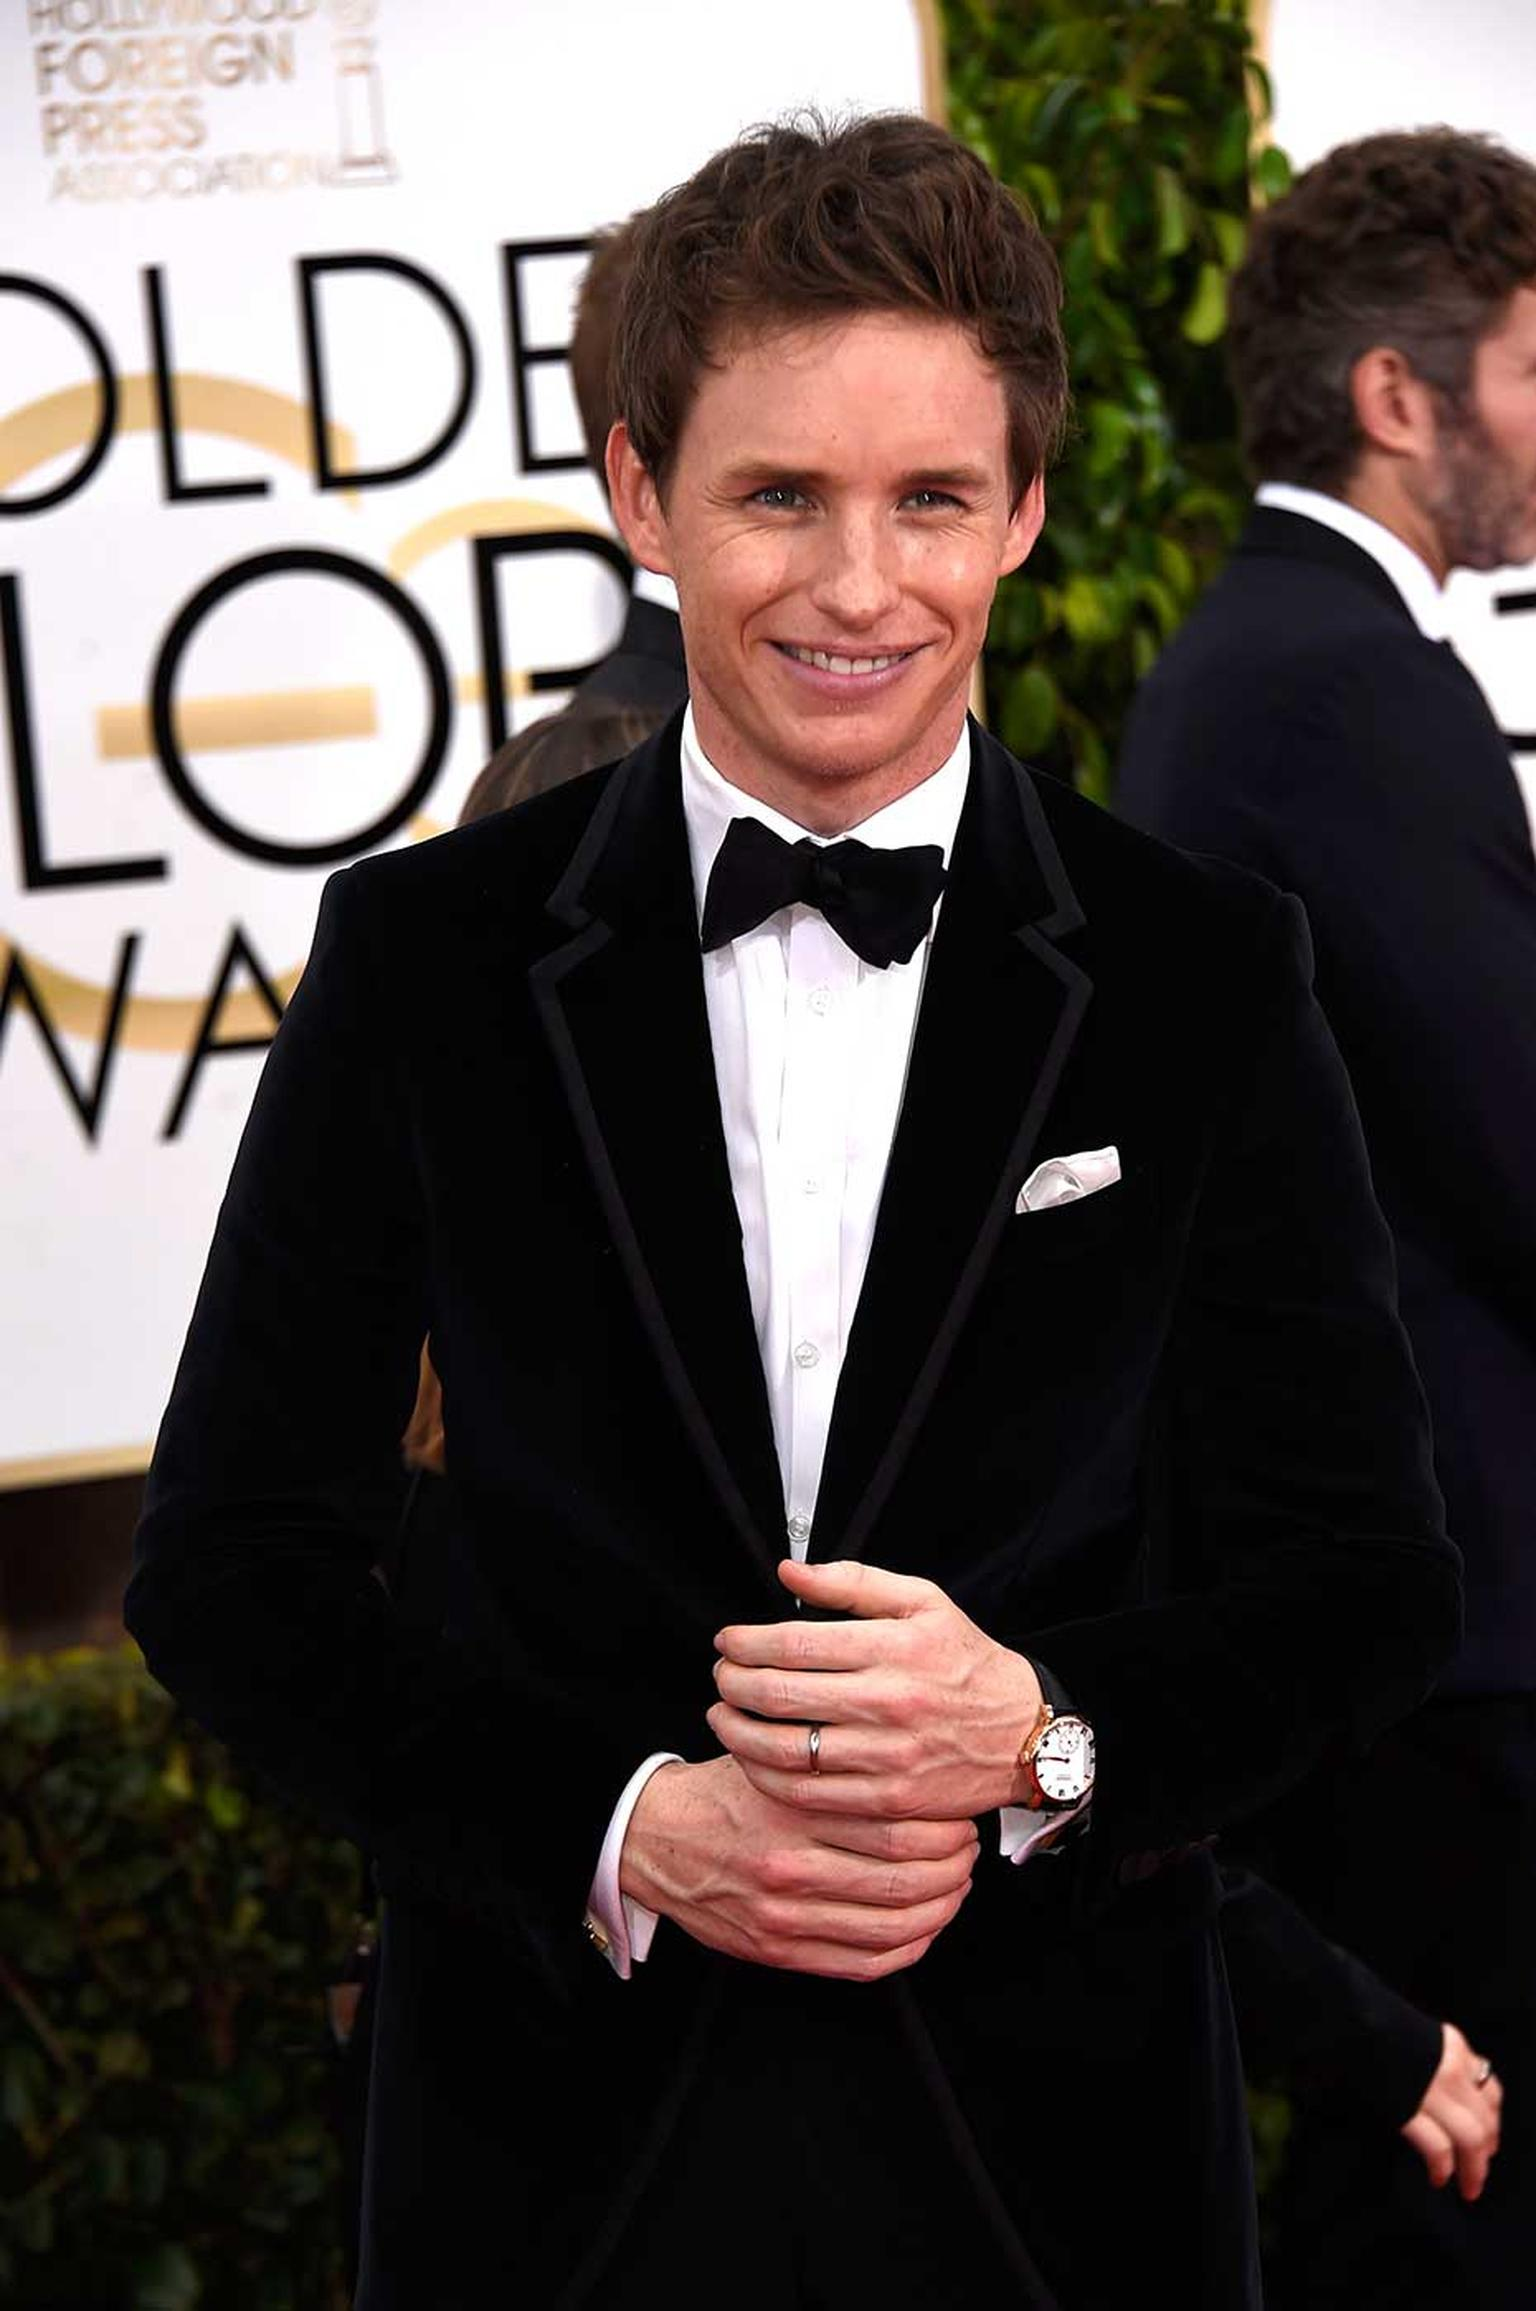 British actor Eddie Redmayne walked the red carpet wearing a Chopard Classic Manufacture watch in rose gold.